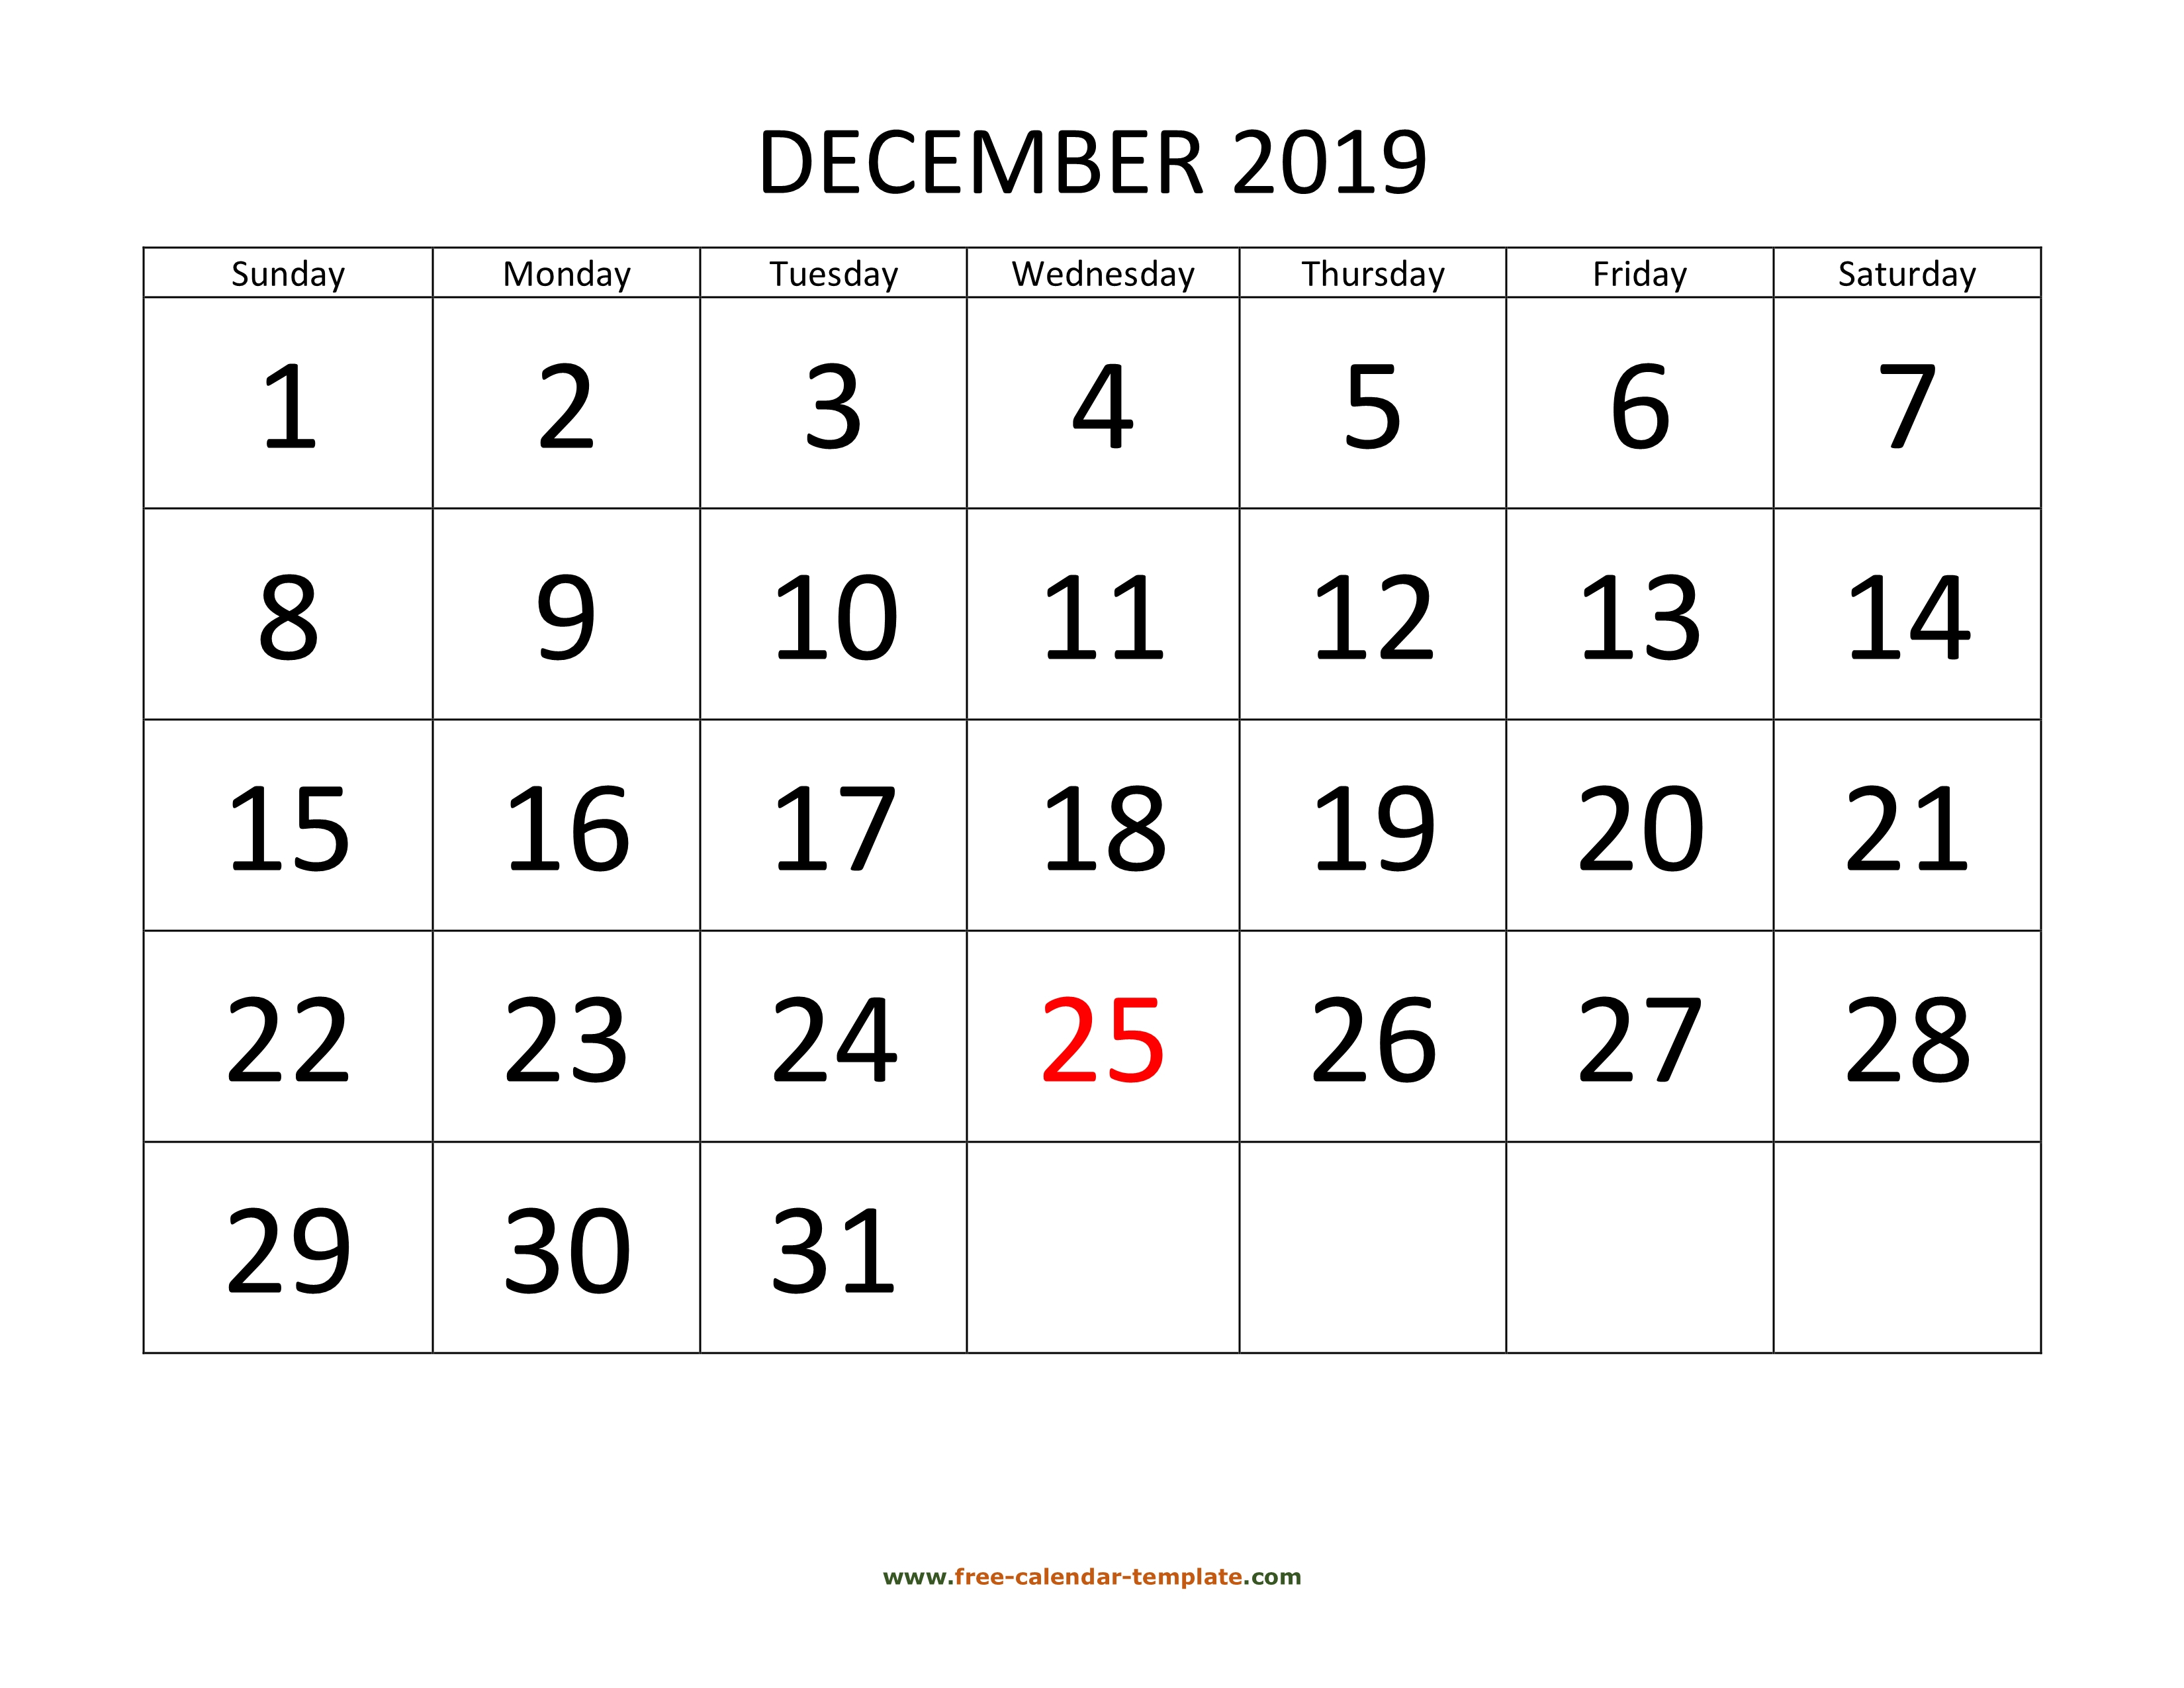 December 2019 Free Calendar Tempplate | Freecalendar inside Printable Calendar With Lines